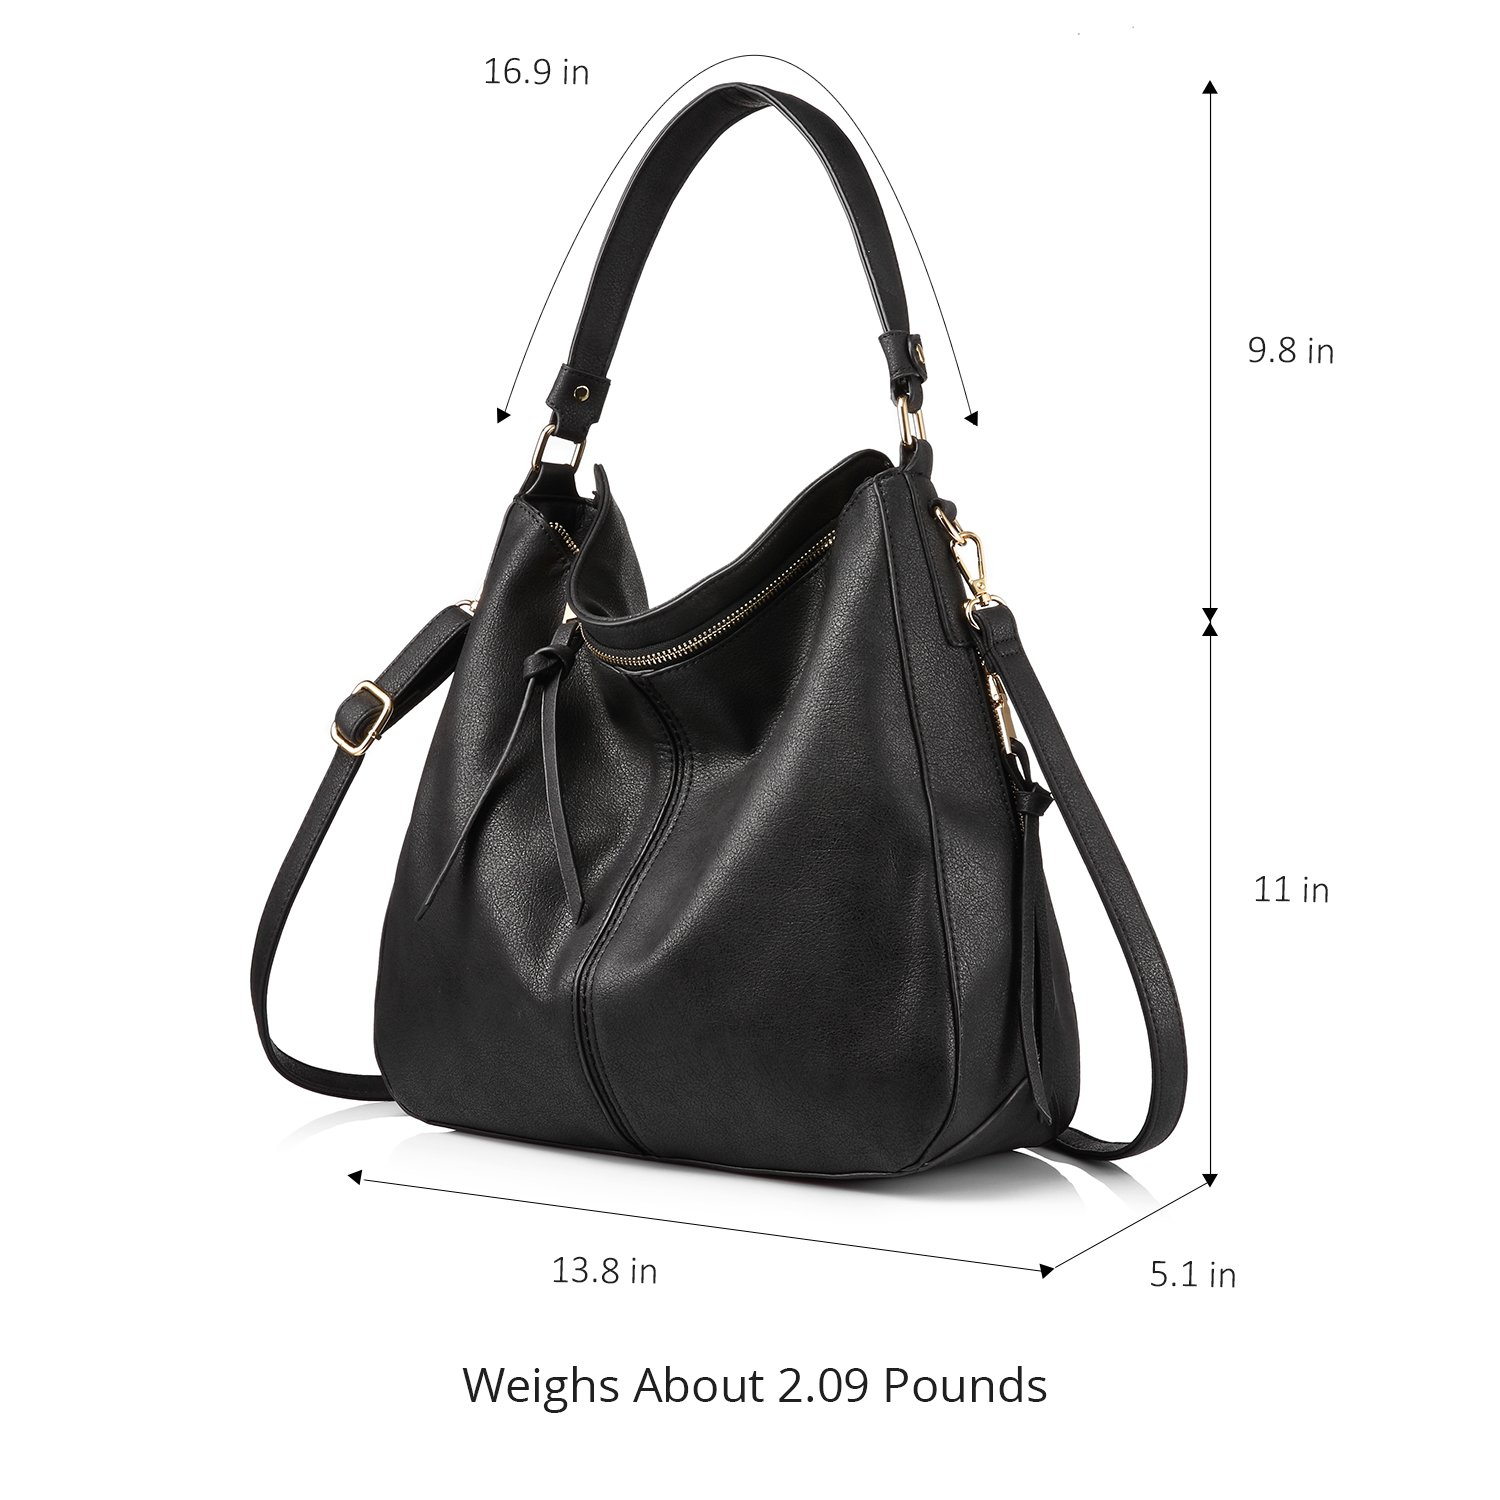 cfe85ca10c Shoulder Bags for Women Large Ladies Crossbody Bag with Tassel  Handbags   Amazon.com